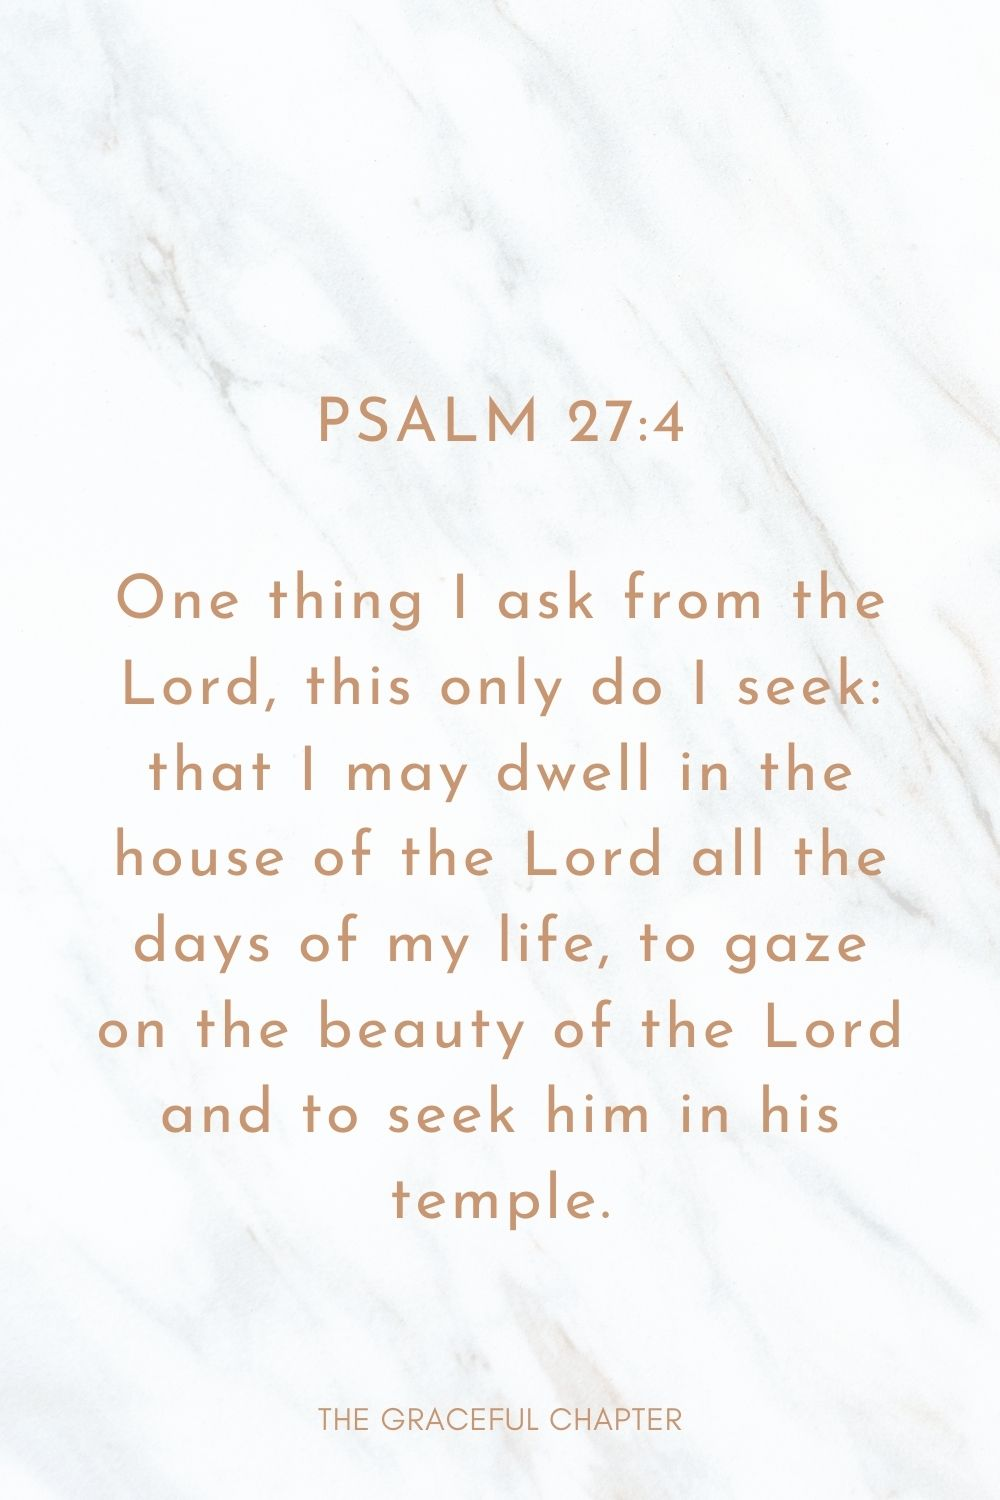 One thing I ask from the Lord, this only do I seek: that I may dwell in the house of the Lord all the days of my life, to gaze on the beauty of the Lord and to seek him in his temple. Psalm 27:4